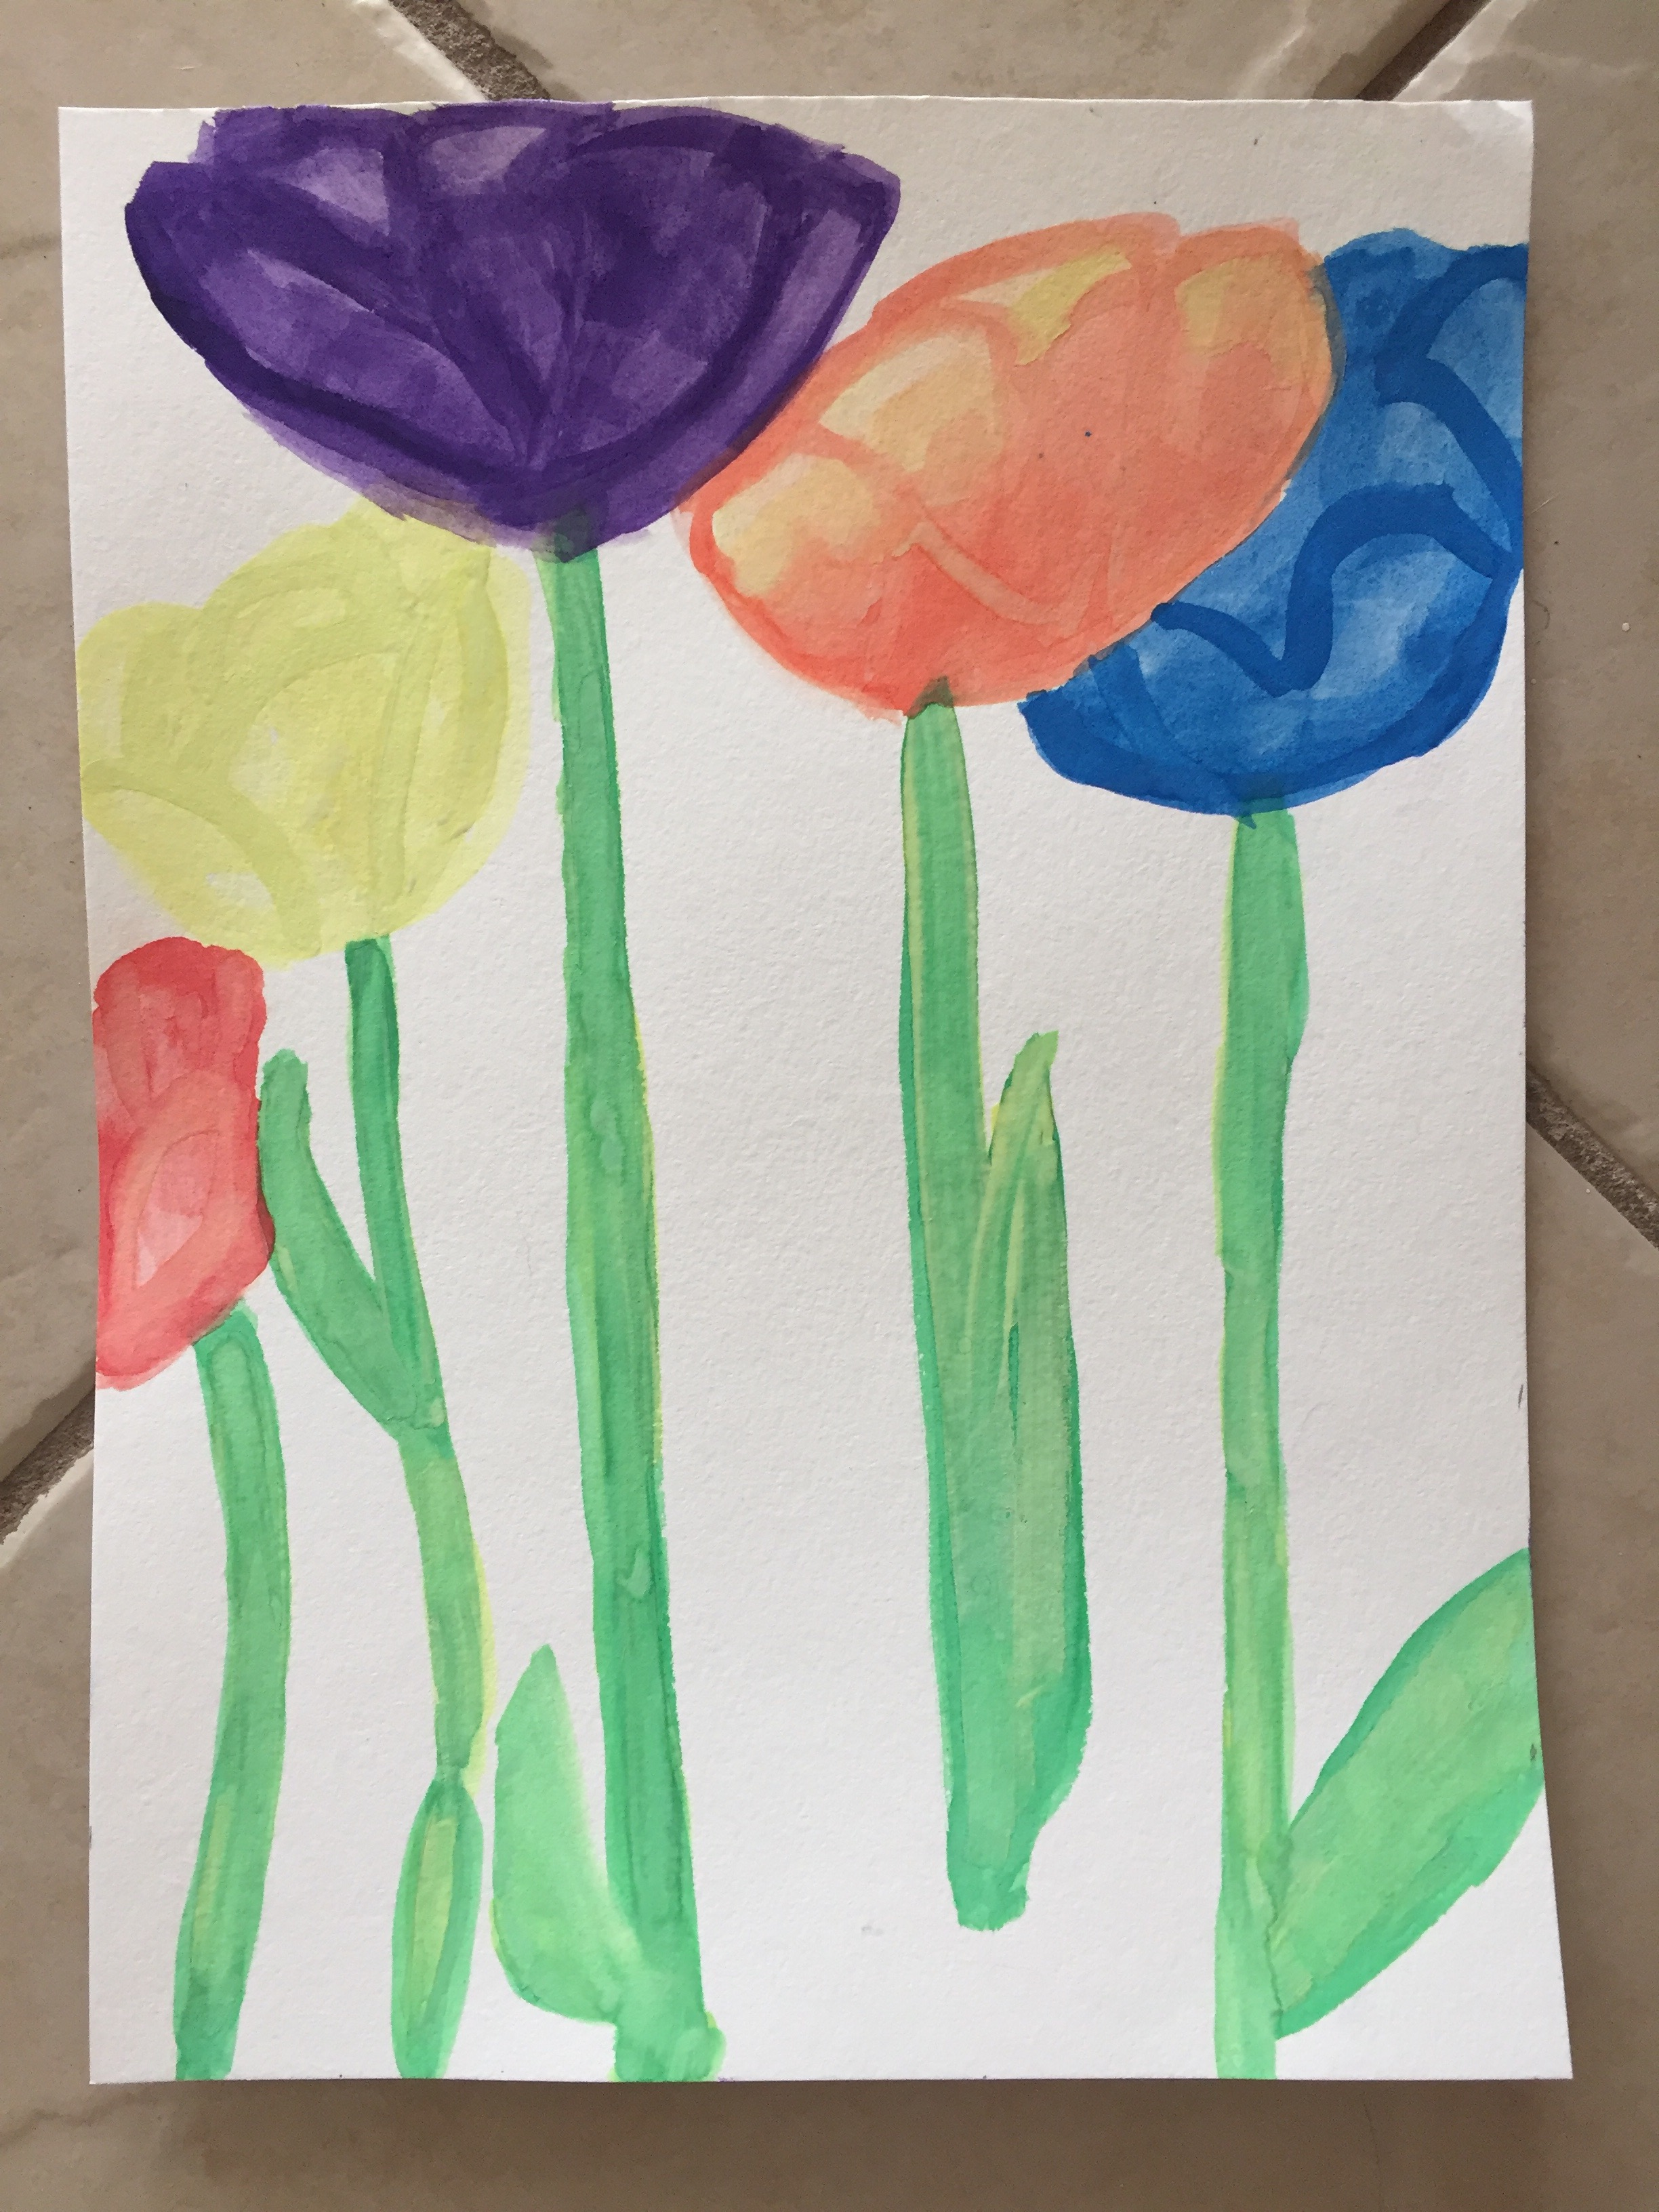 My attempt at a tulip garden! Don't laugh too hard.